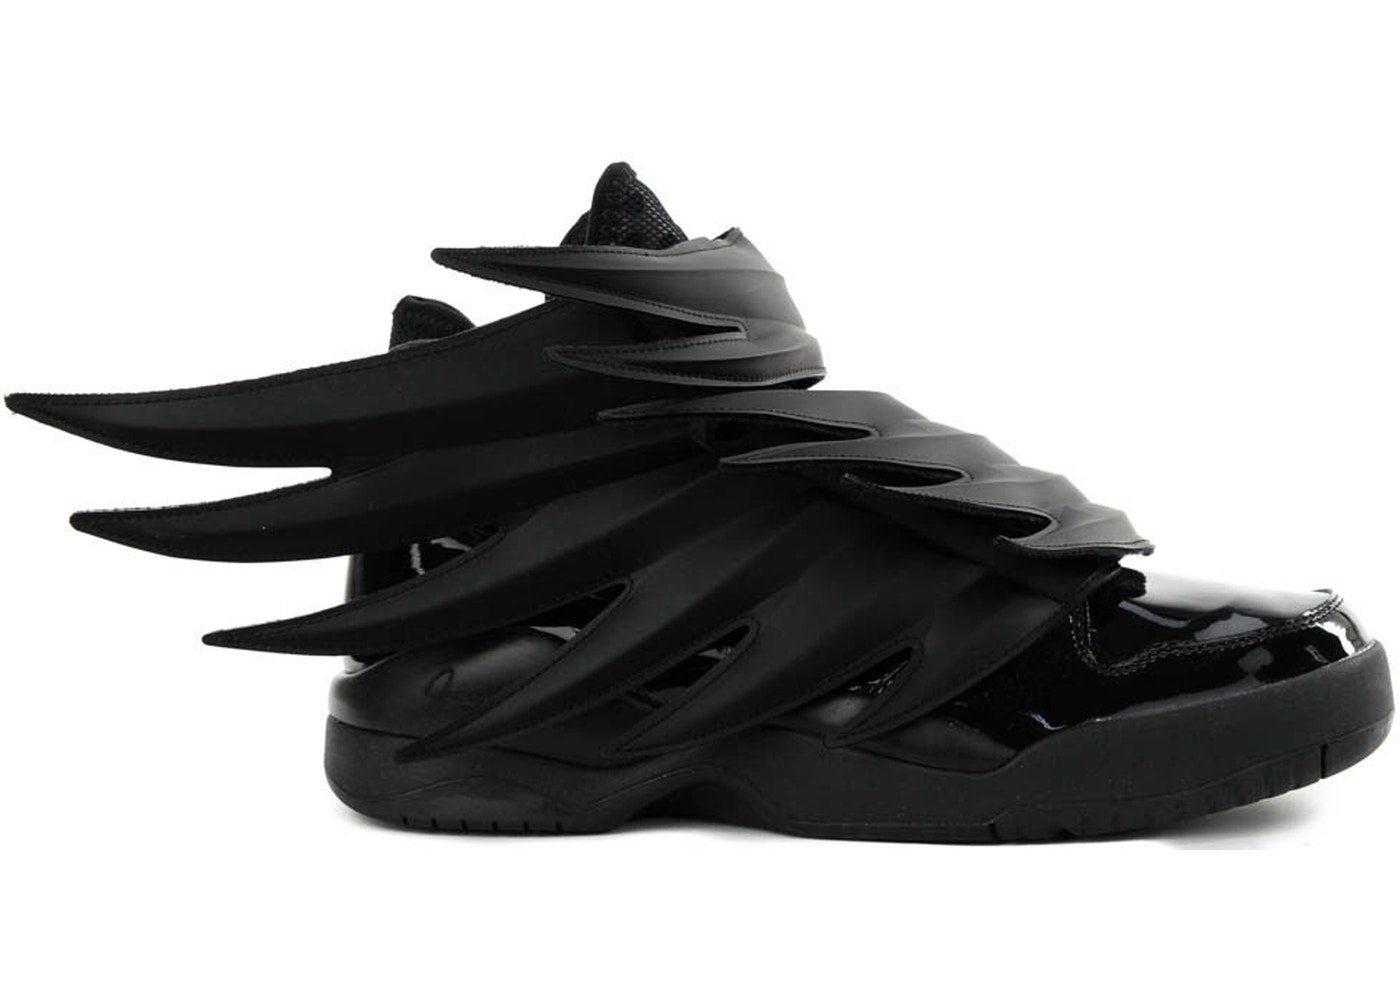 reputable site 95379 a3fd4 adidas Jeremy Scott Wings 3.0 Dark Knight